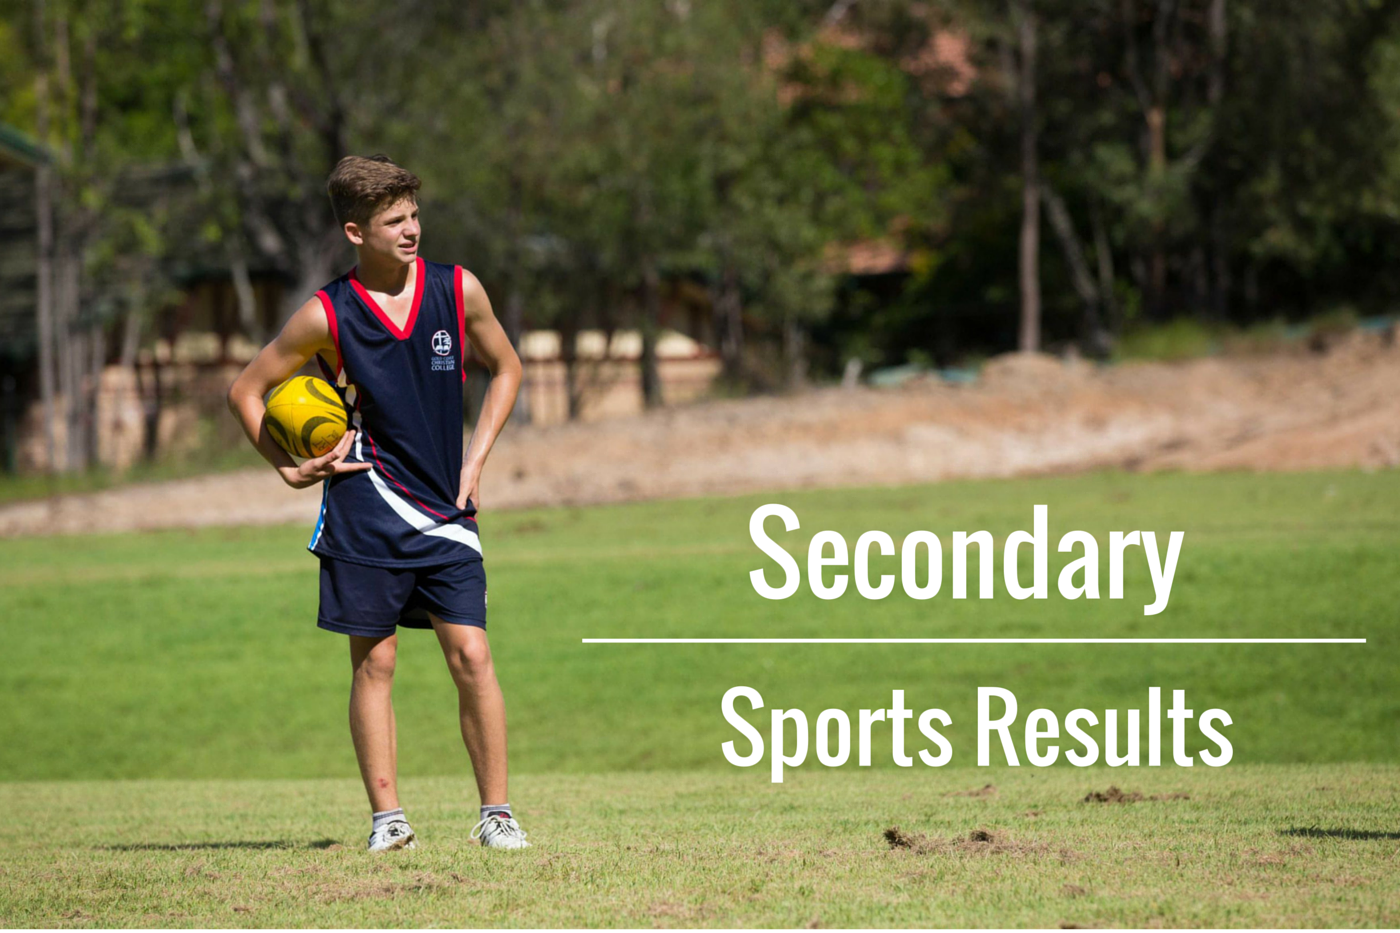 Secondary Sports Results